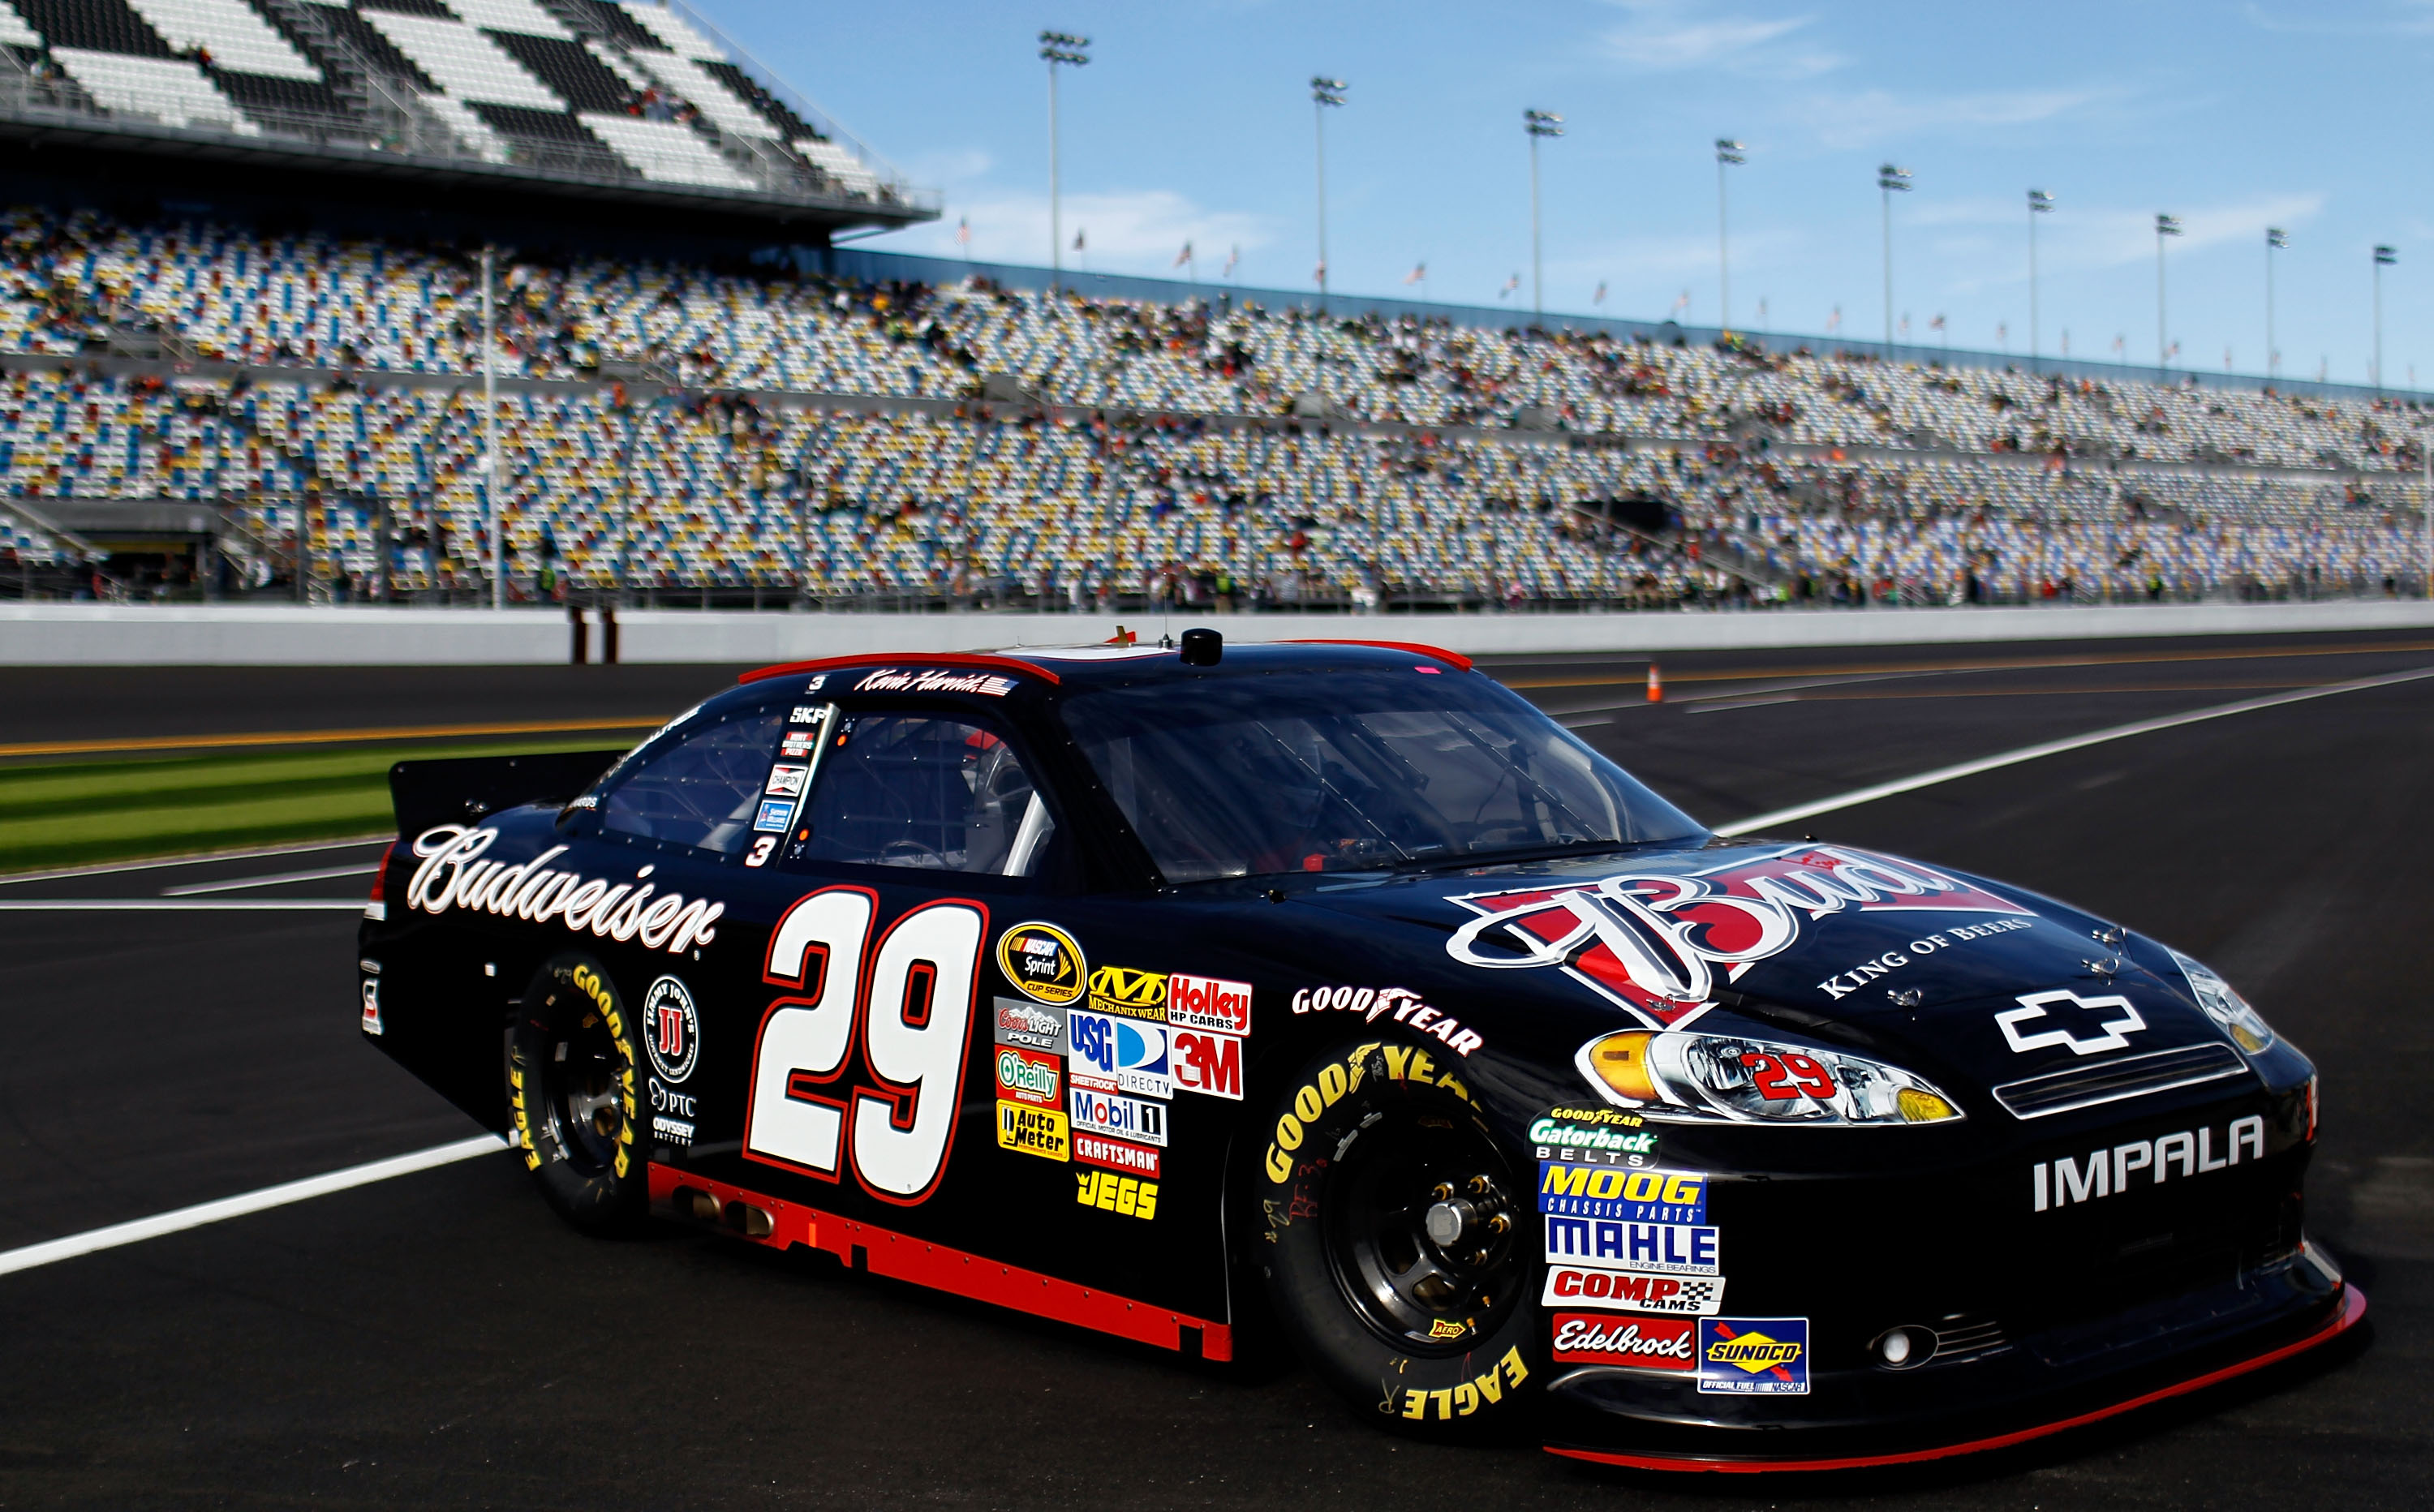 DAYTONA BEACH, FL - FEBRUARY 12:  Kevin Harvick, driver of the #29 Budweiser Chevrolet, drives off pit road during practice for the NASCAR Sprint Cup Series Daytona 500 at Daytona International Speedway on February 12, 2011 in Daytona Beach, Florida.  (Ph